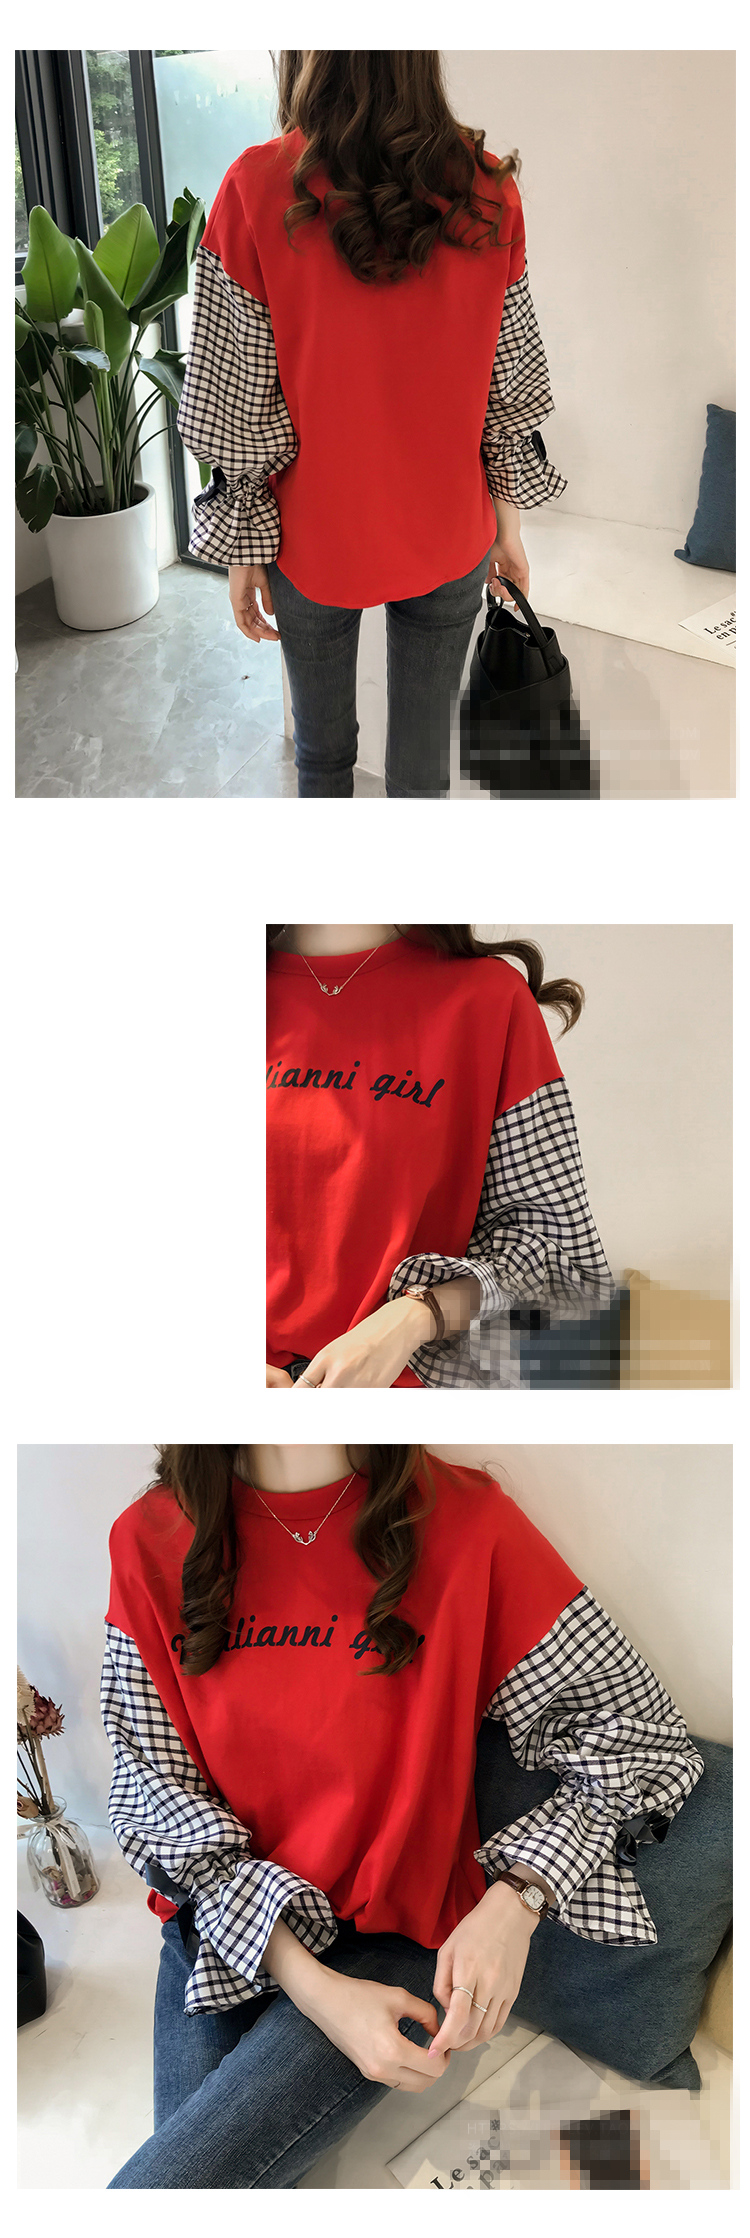 M-4xl Plus Size Cotton Casual T-shirts Women Plaid Patchwork Flare Sleeve O-neck Tshirts Harajuku Fake Two Piece Loose Tees Tops 10 Online shopping Bangladesh